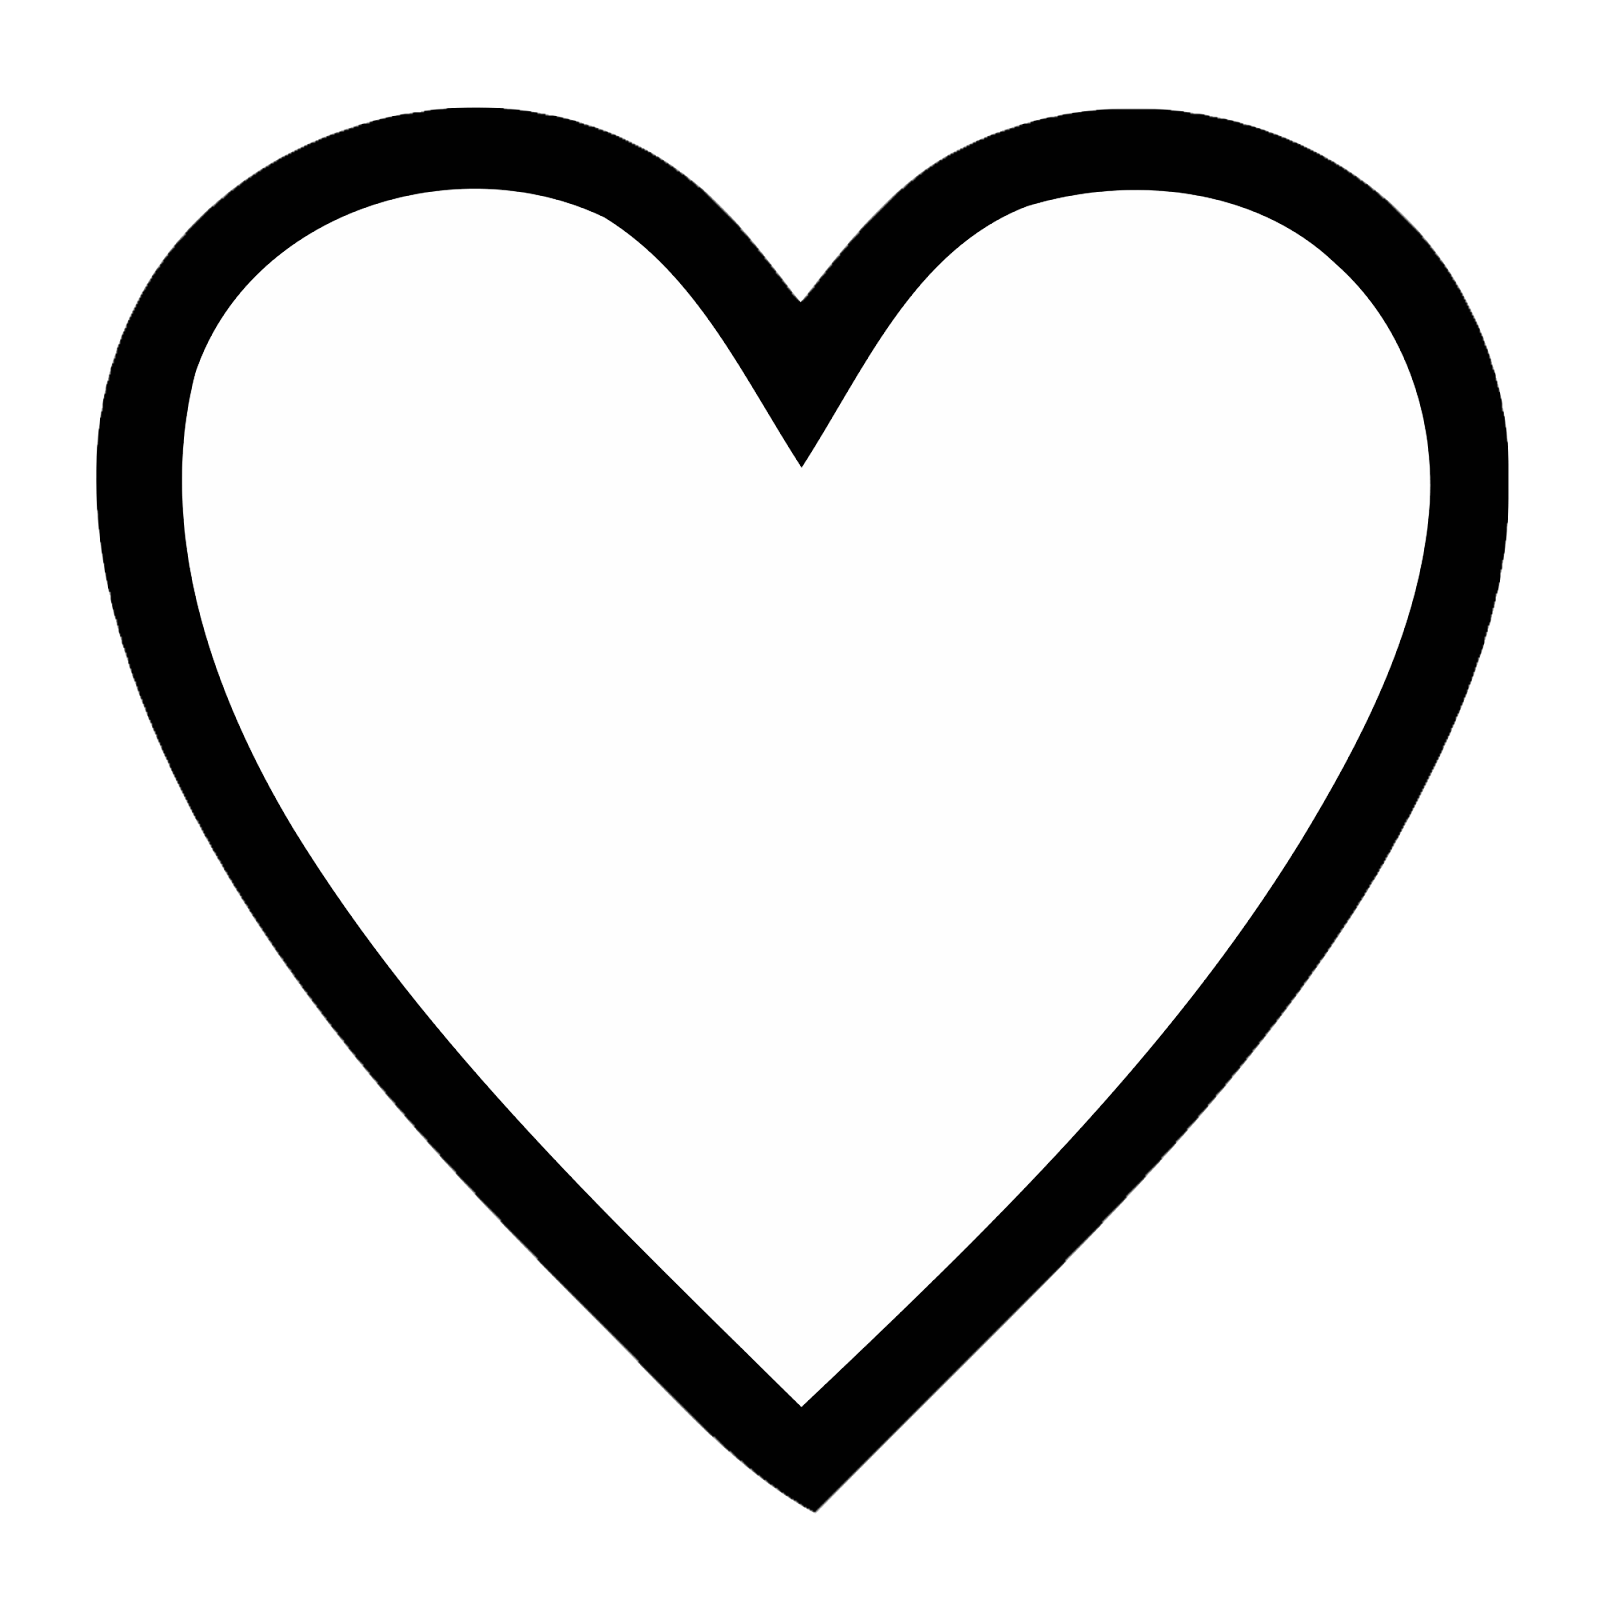 Hearts clipart drawn heart Images Heart real%20heart%20drawing Free Clipart